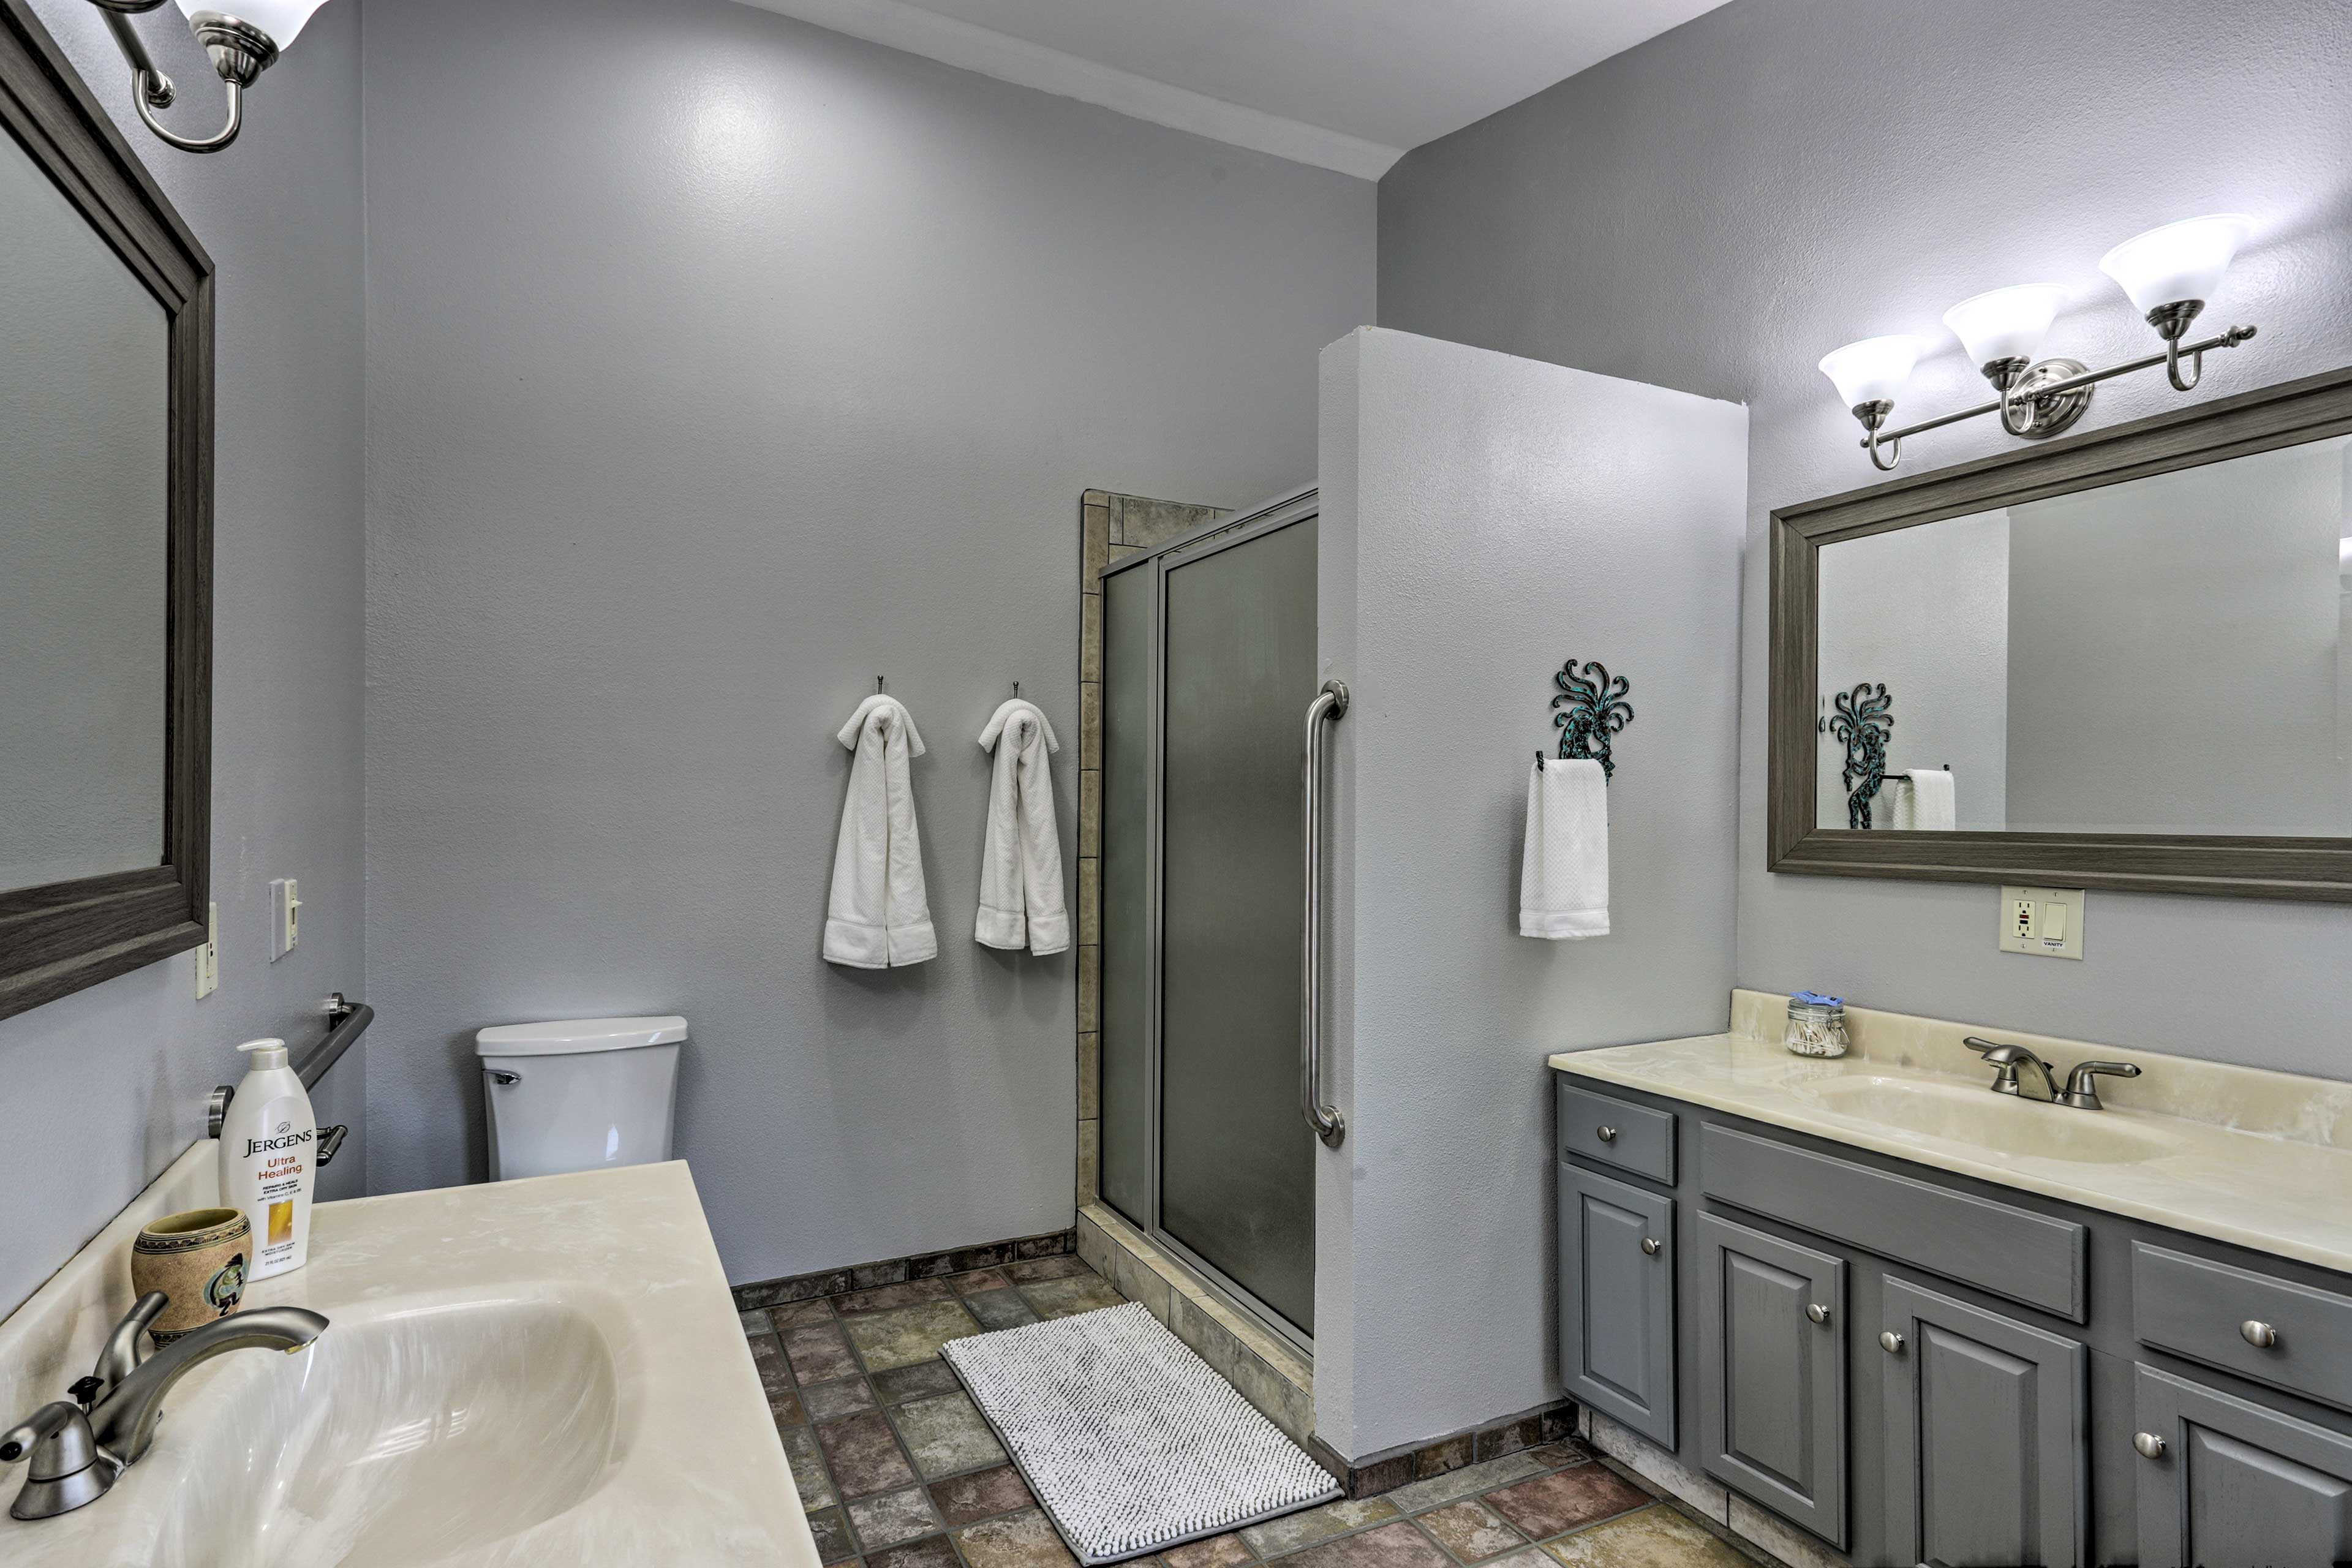 The walk-in shower offers another way to freshen up!